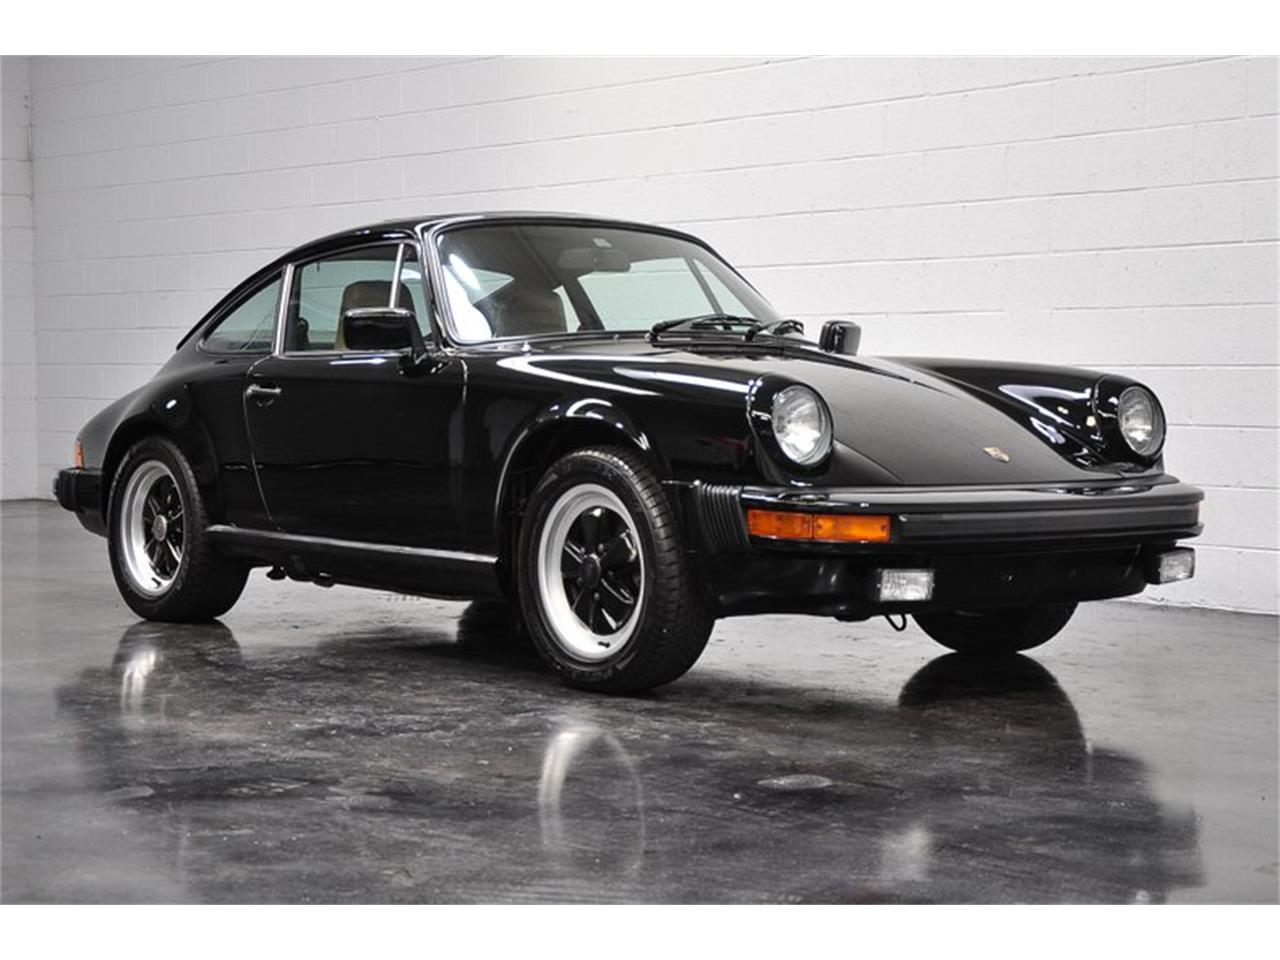 1978 Porsche 911SC for sale in Costa Mesa, CA – photo 4